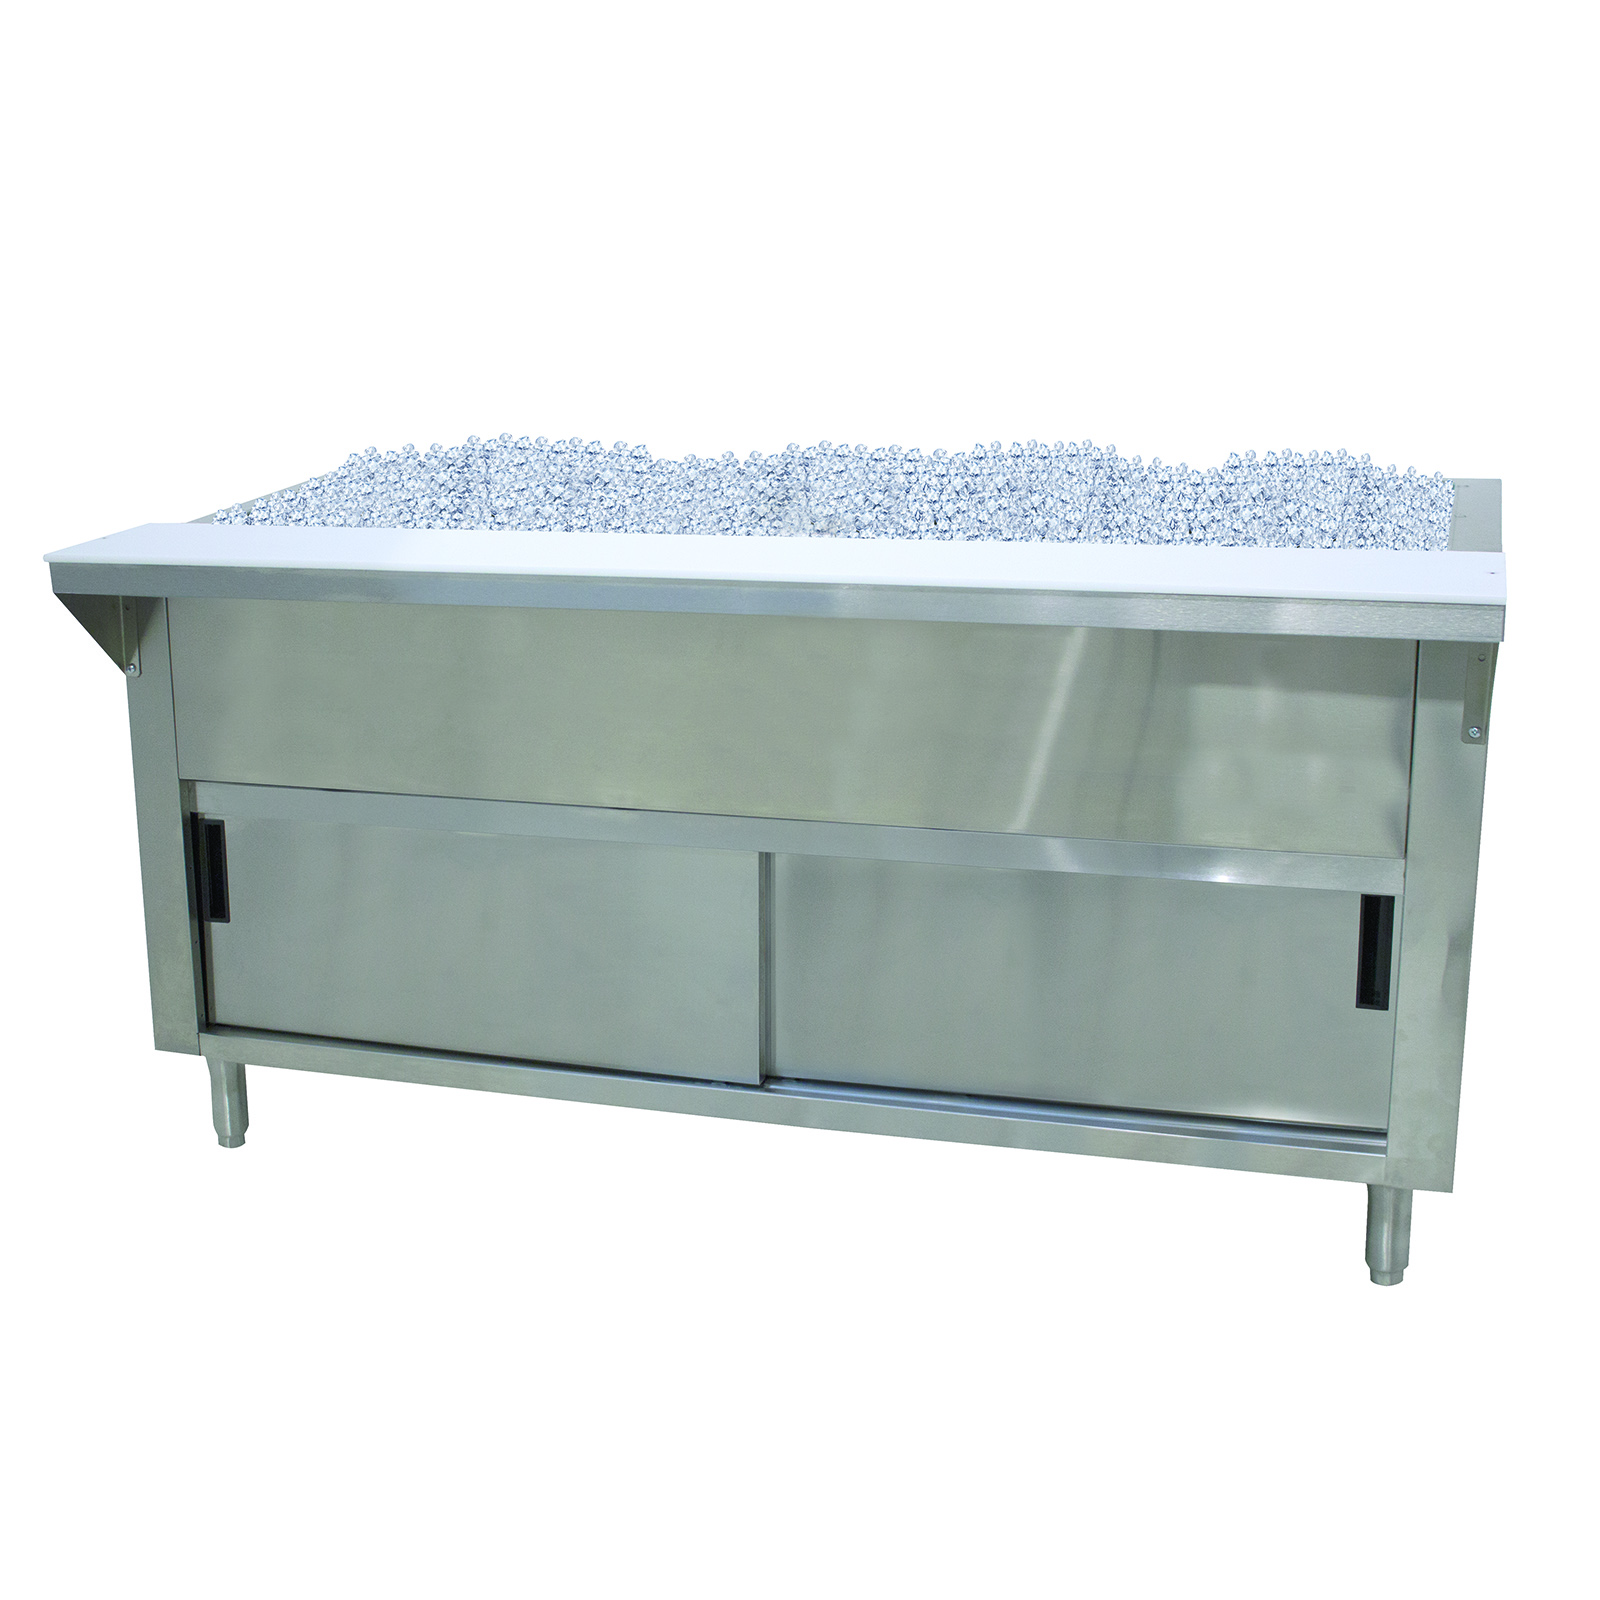 Advance Tabco CPU-3-DR serving counter, cold food